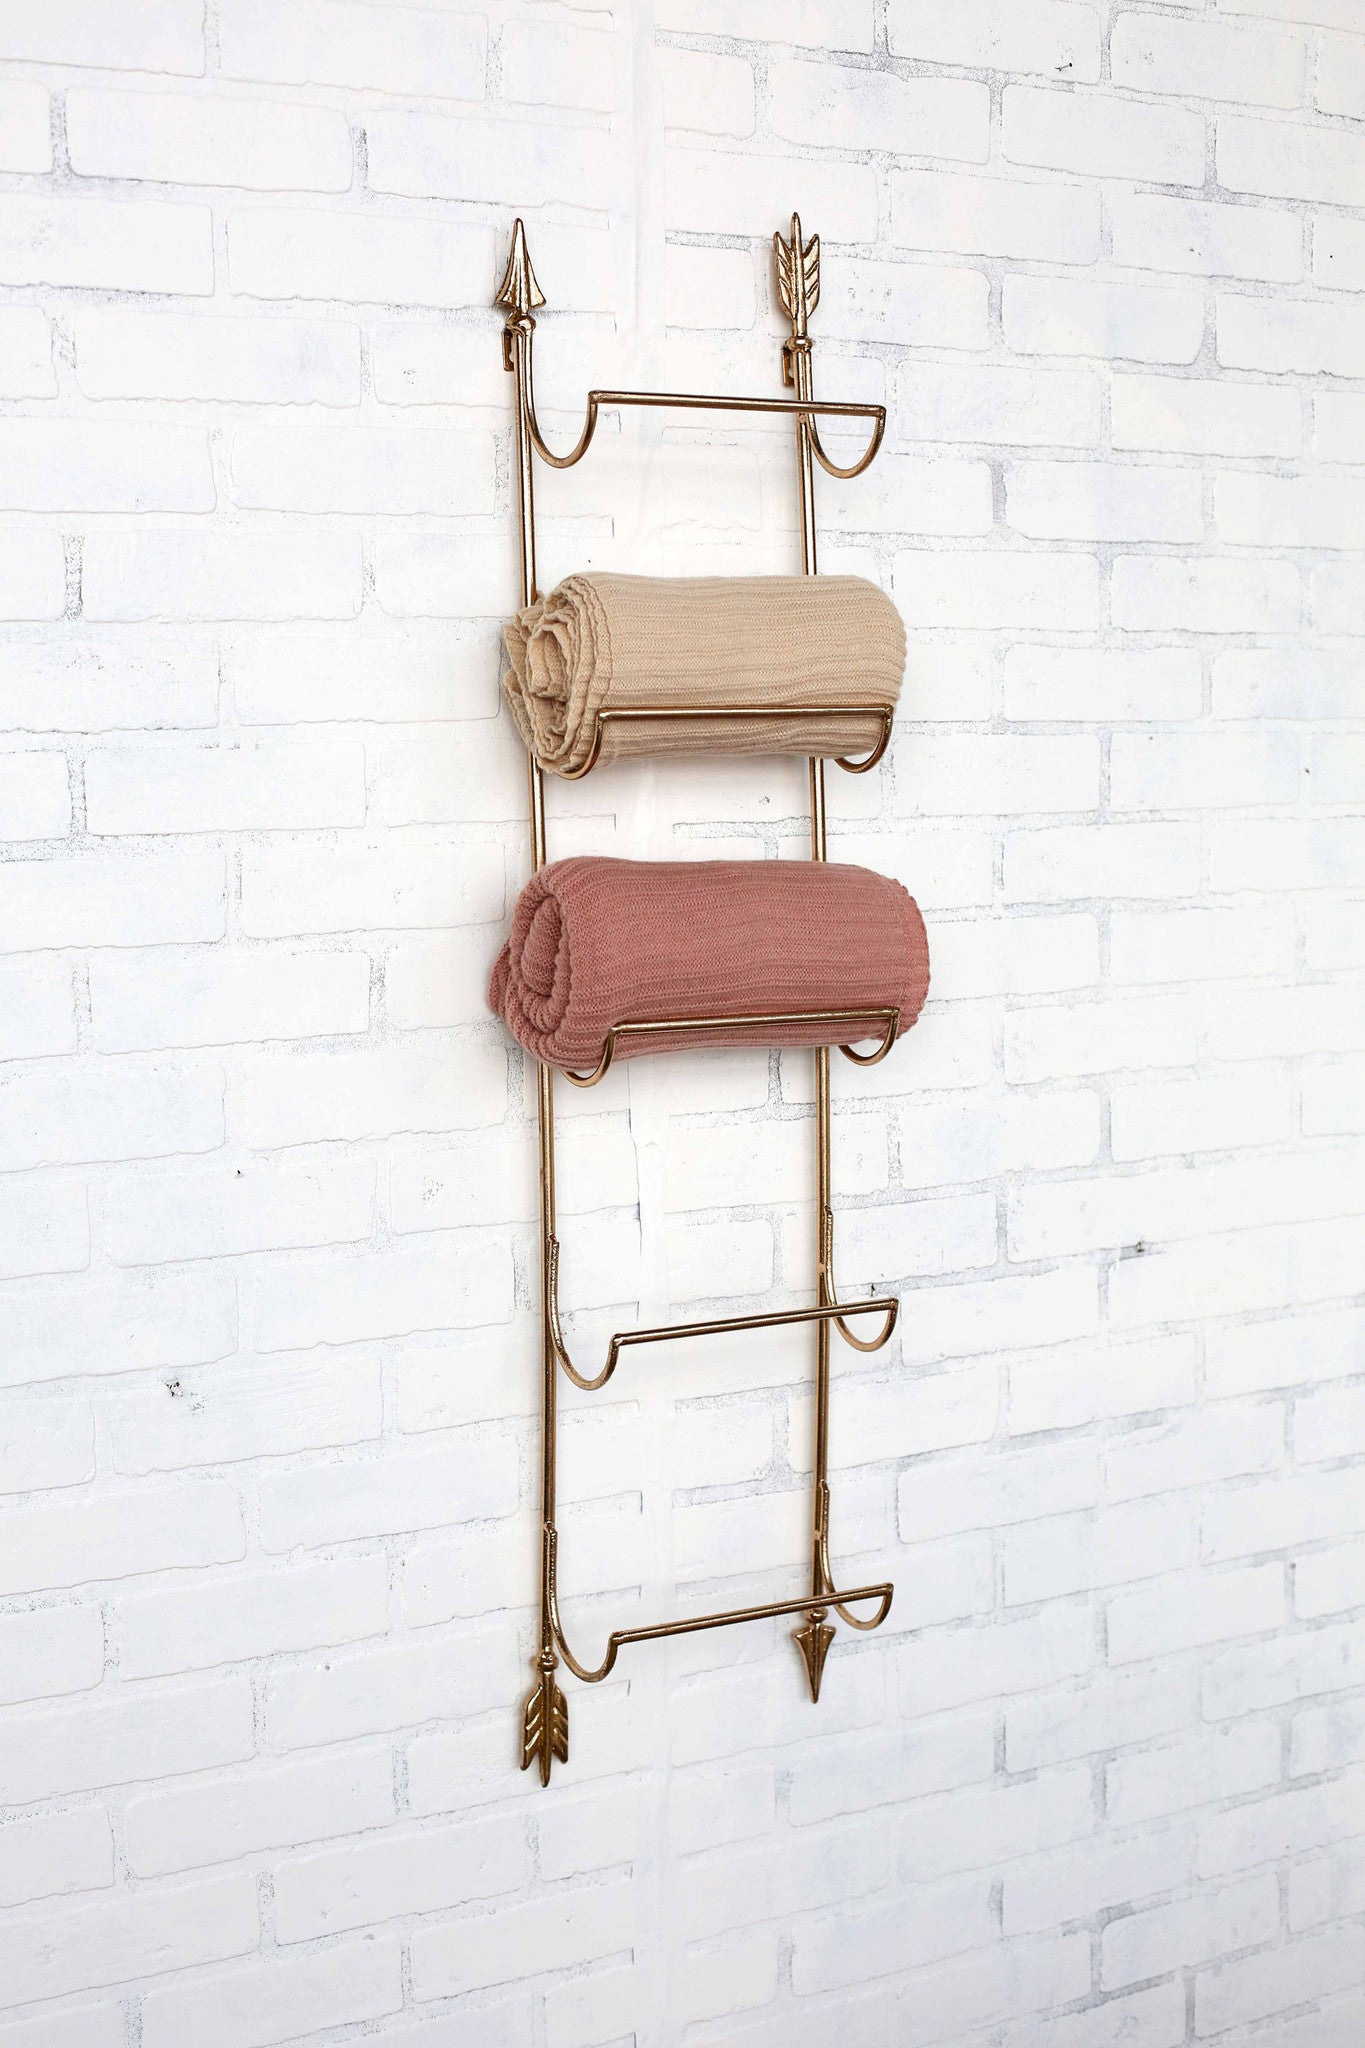 Gold Foil Arrow Wall Rack!